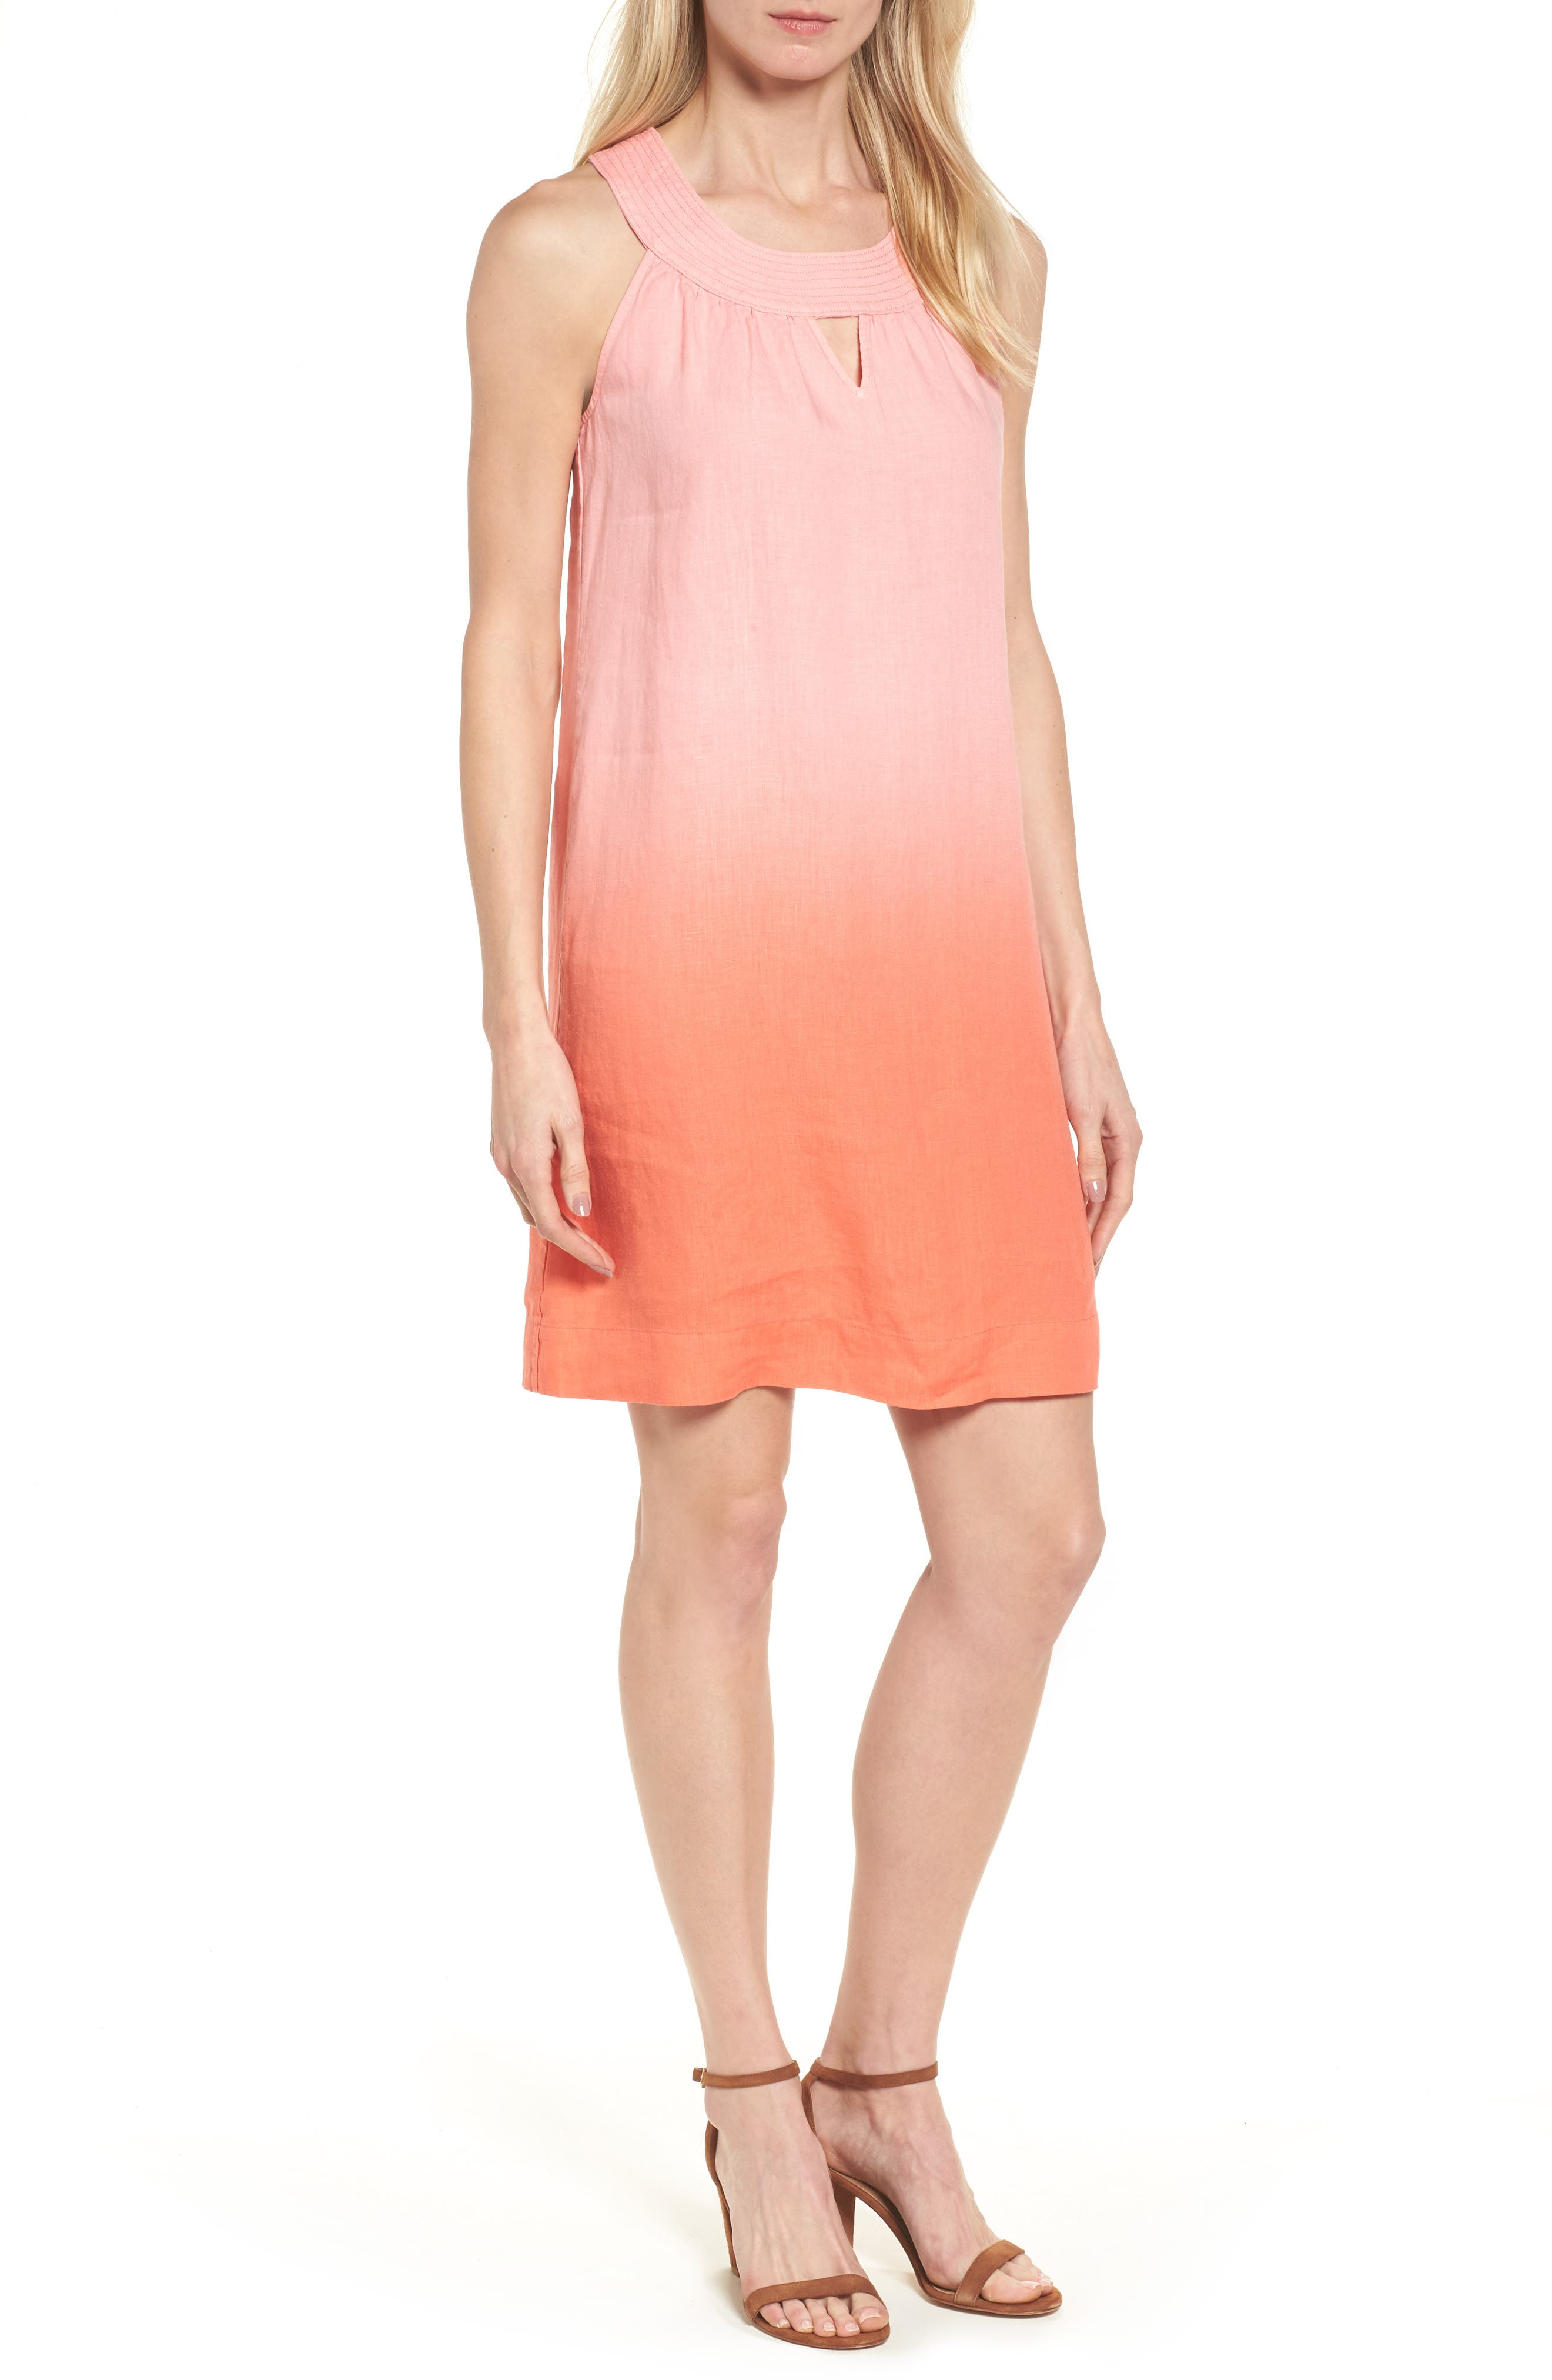 Two Palms Short Sundress,                         Main,                         color, CABANA PINK/ BURNT CORAL